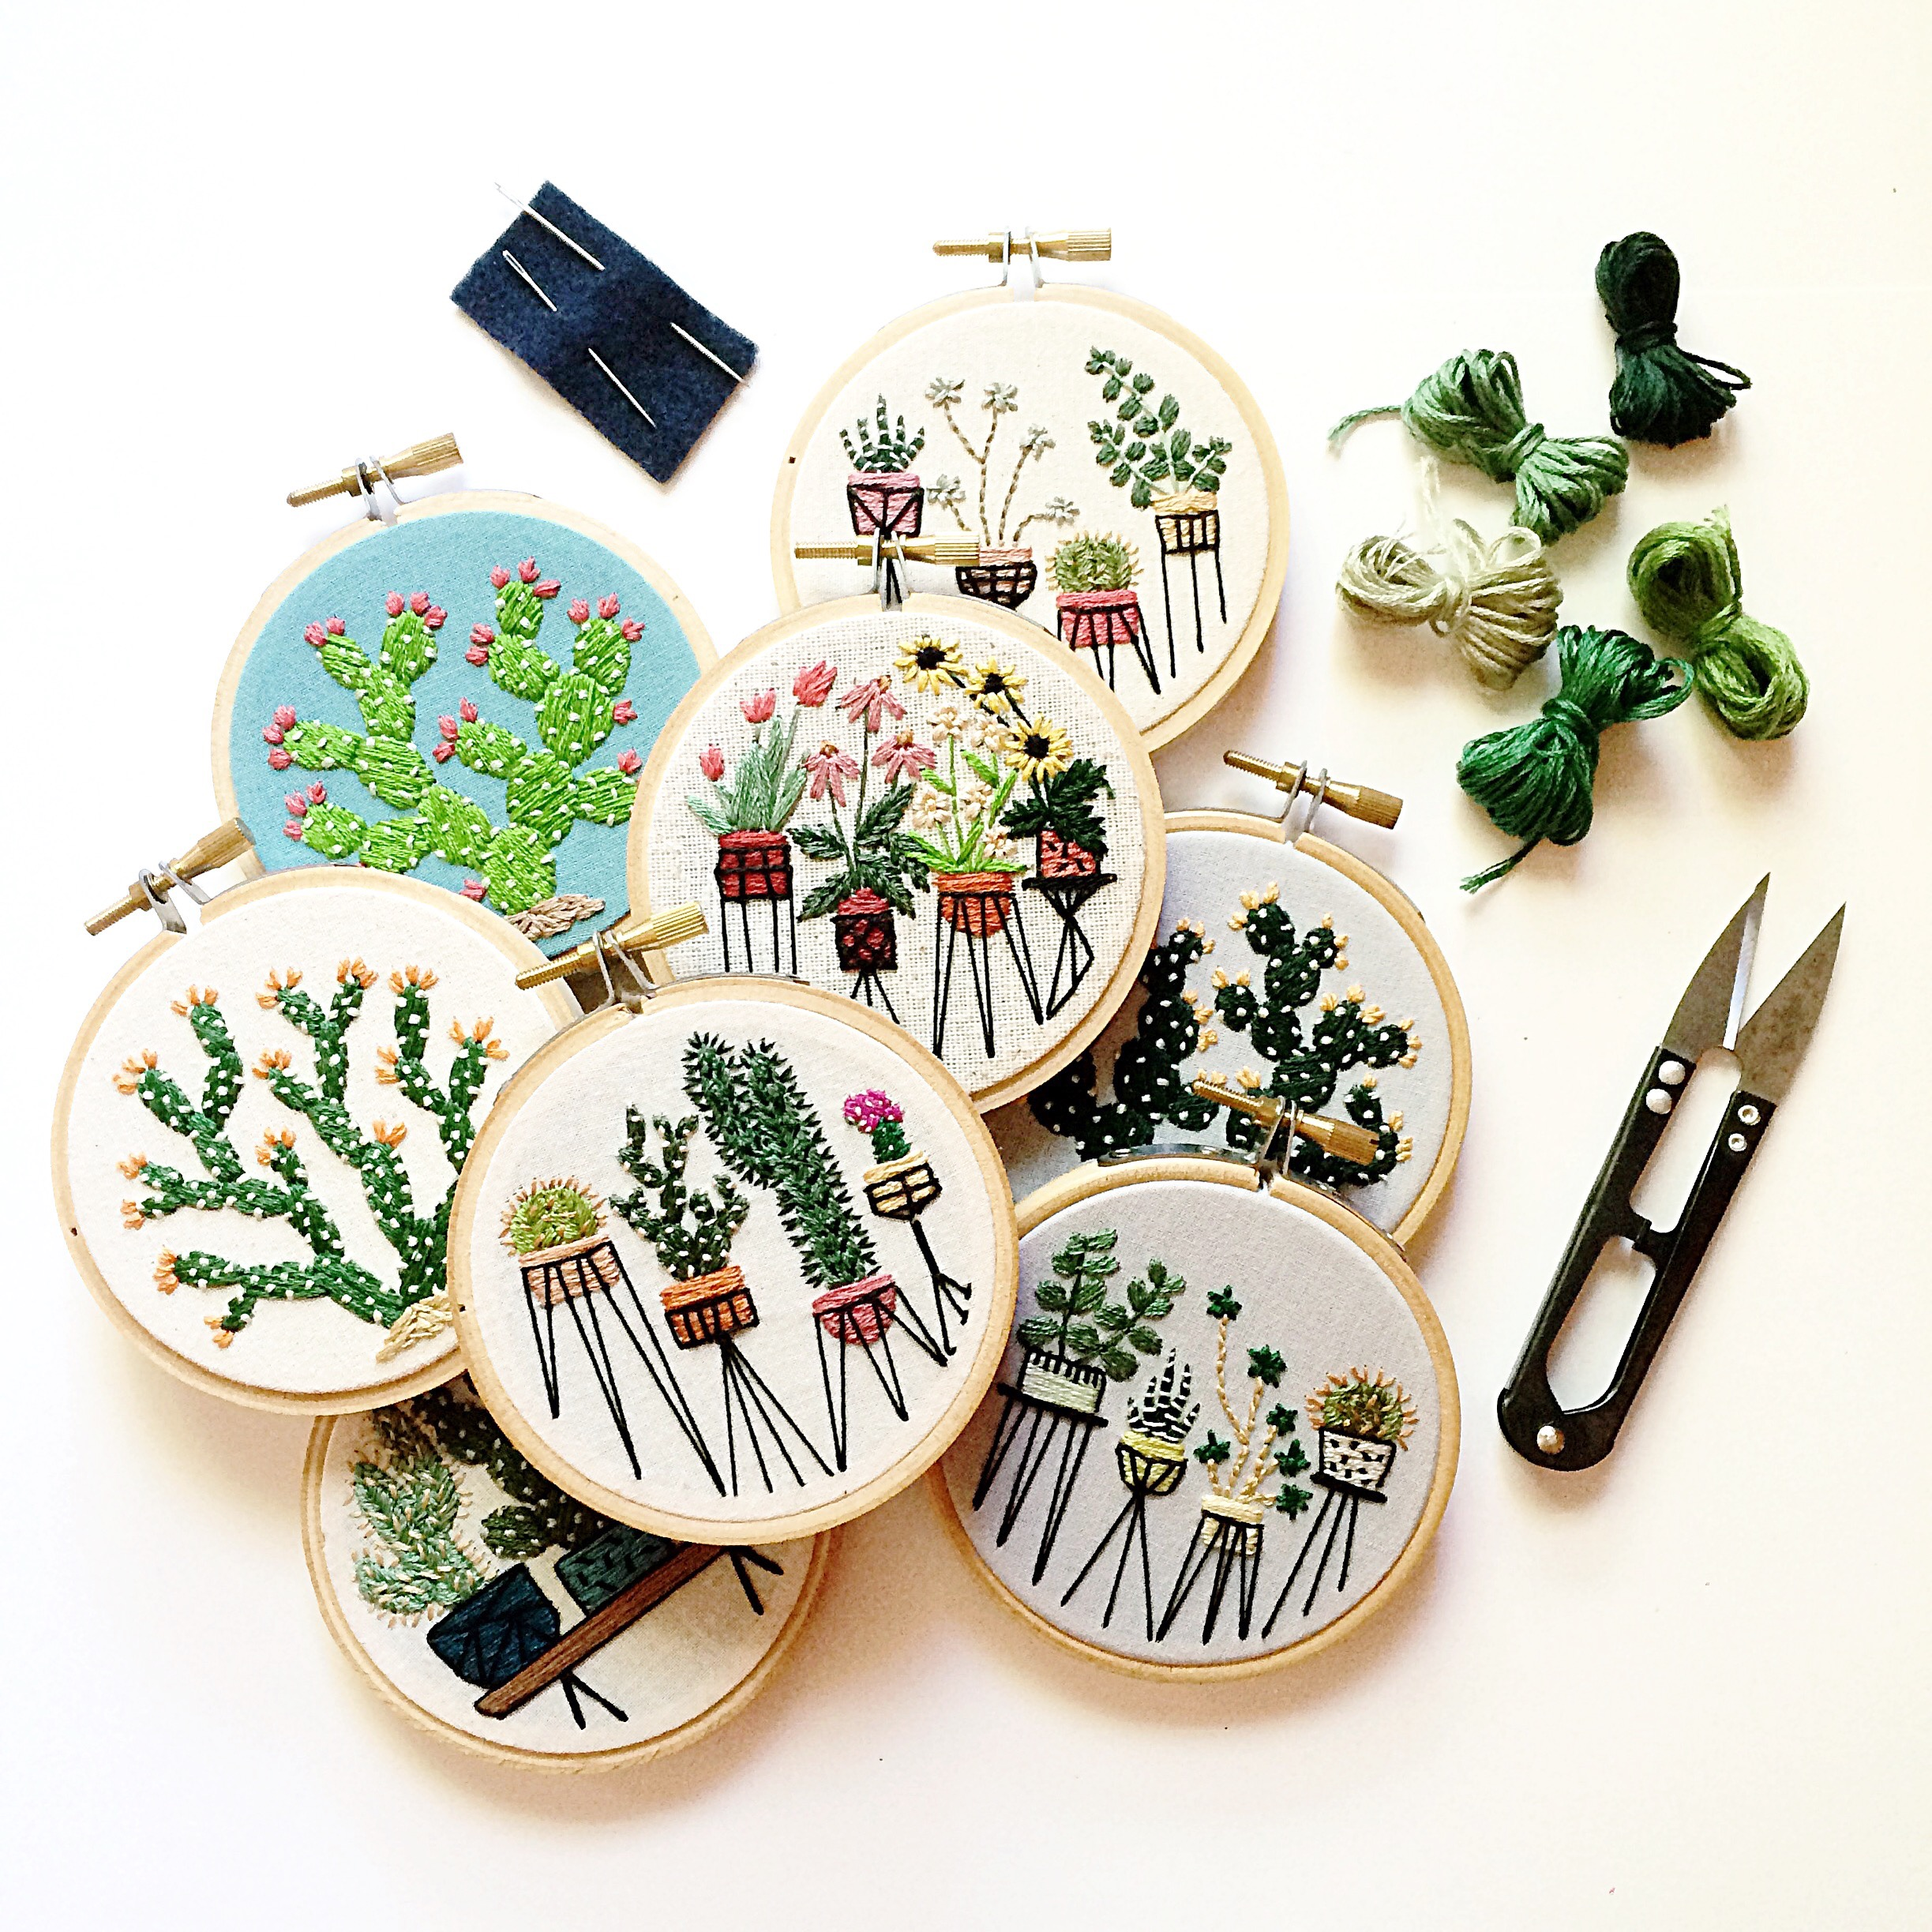 April 6, 6 - 8 pm, Chicago - Please join me for an evening of embroidery at one of my favorite places in Chicago!Participants and I will stitch up some mini botanical embroideries. I will share all of my best and favorite tips and tricks, walking participants through the embroidery process from start to finish.There is absolutely no embroidery experience necessary! All you need is a little patience and enthusiasm for making.All materials will be provided!